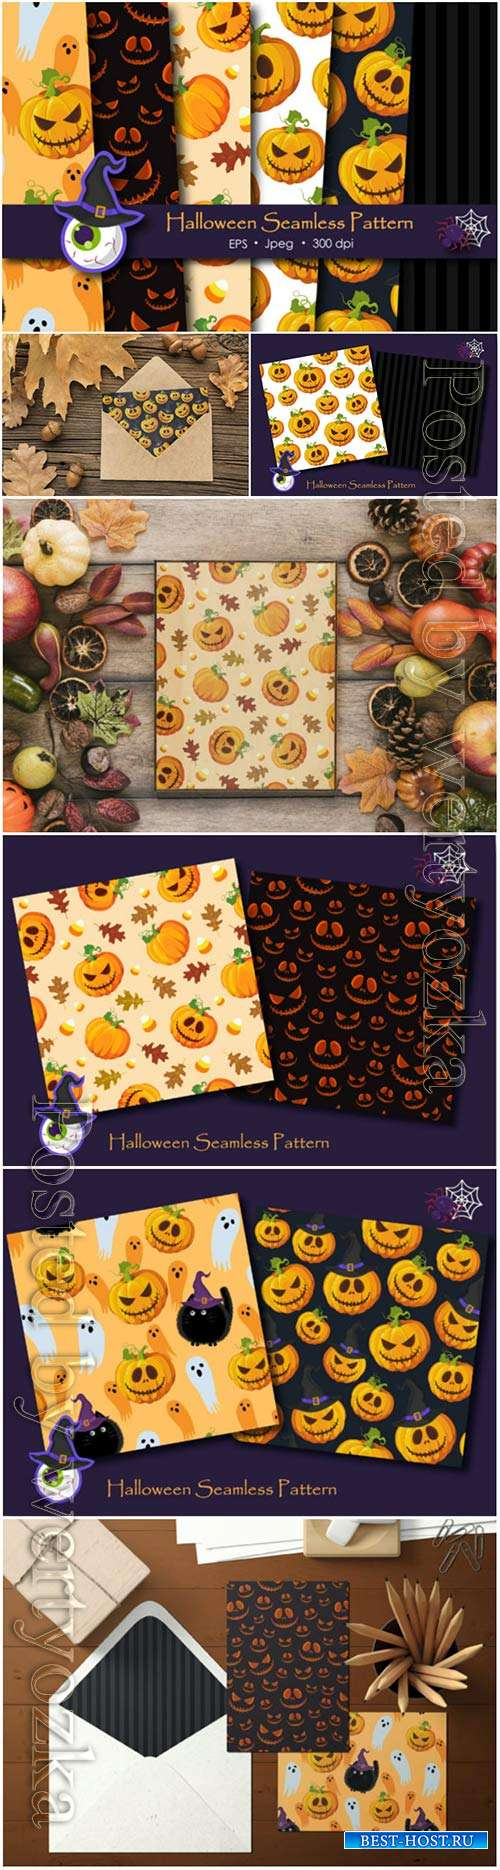 Halloween pumpkins vector pattern